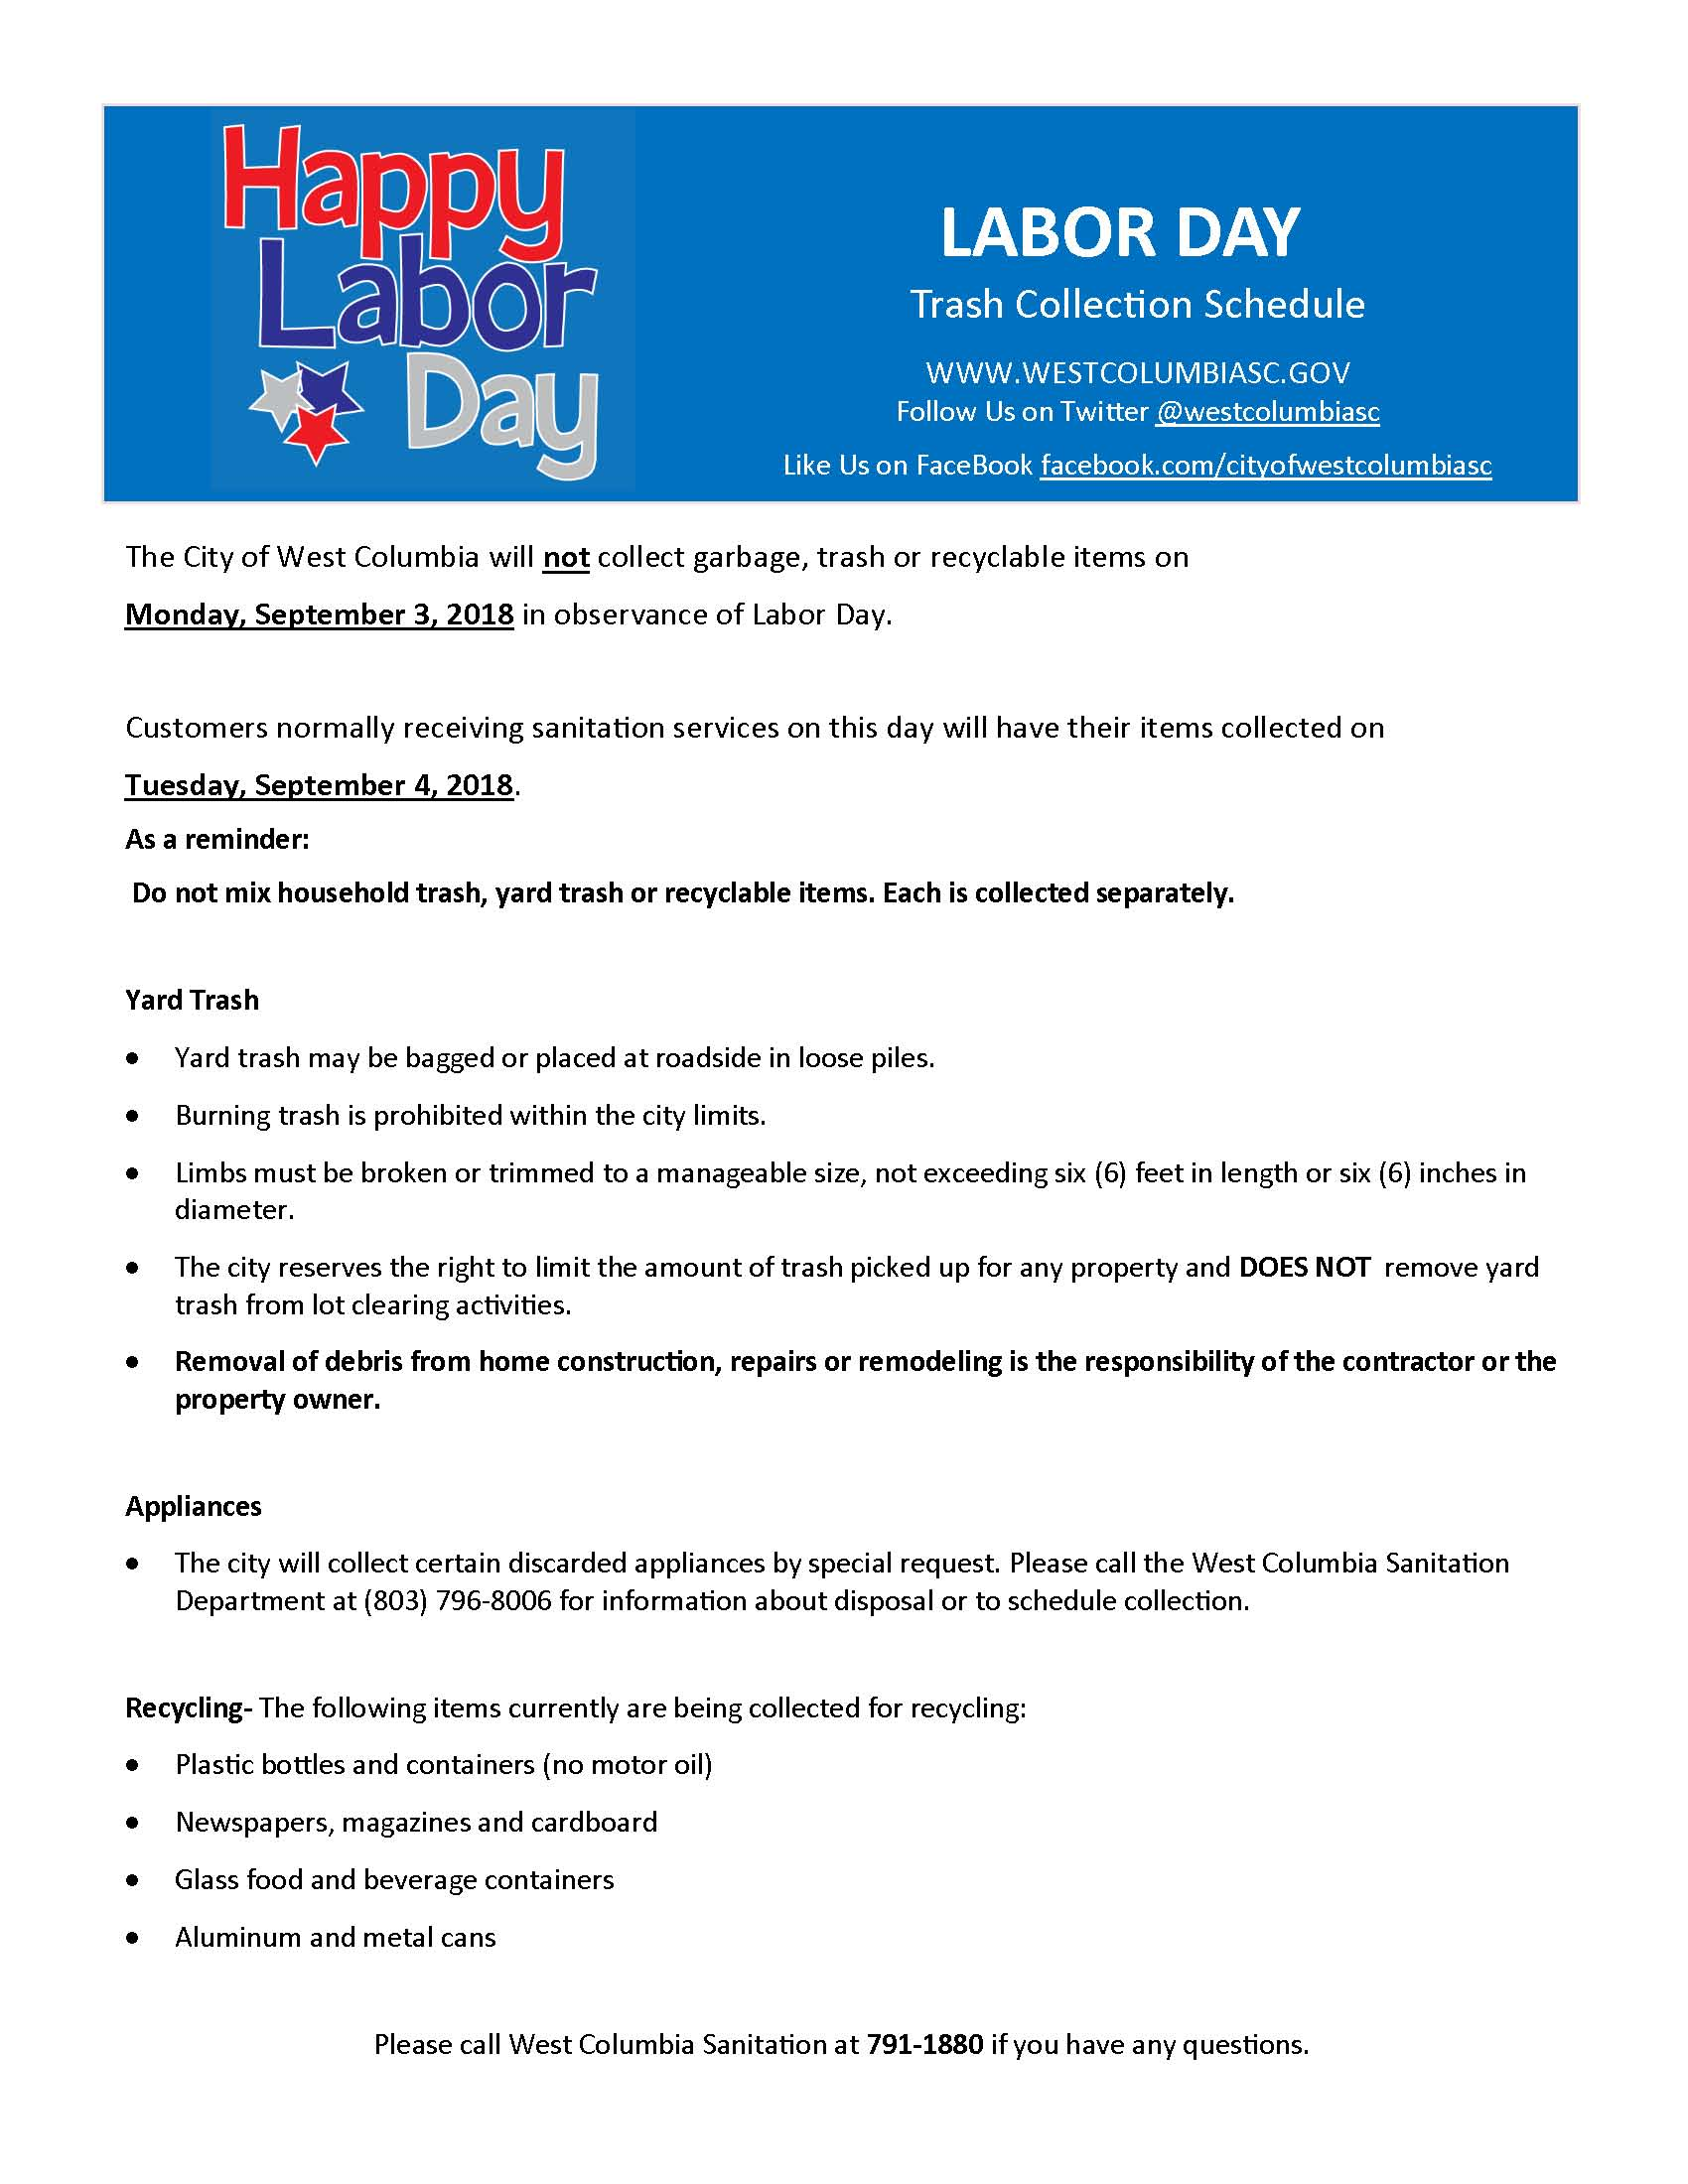 city of west columbia labor day office closing and